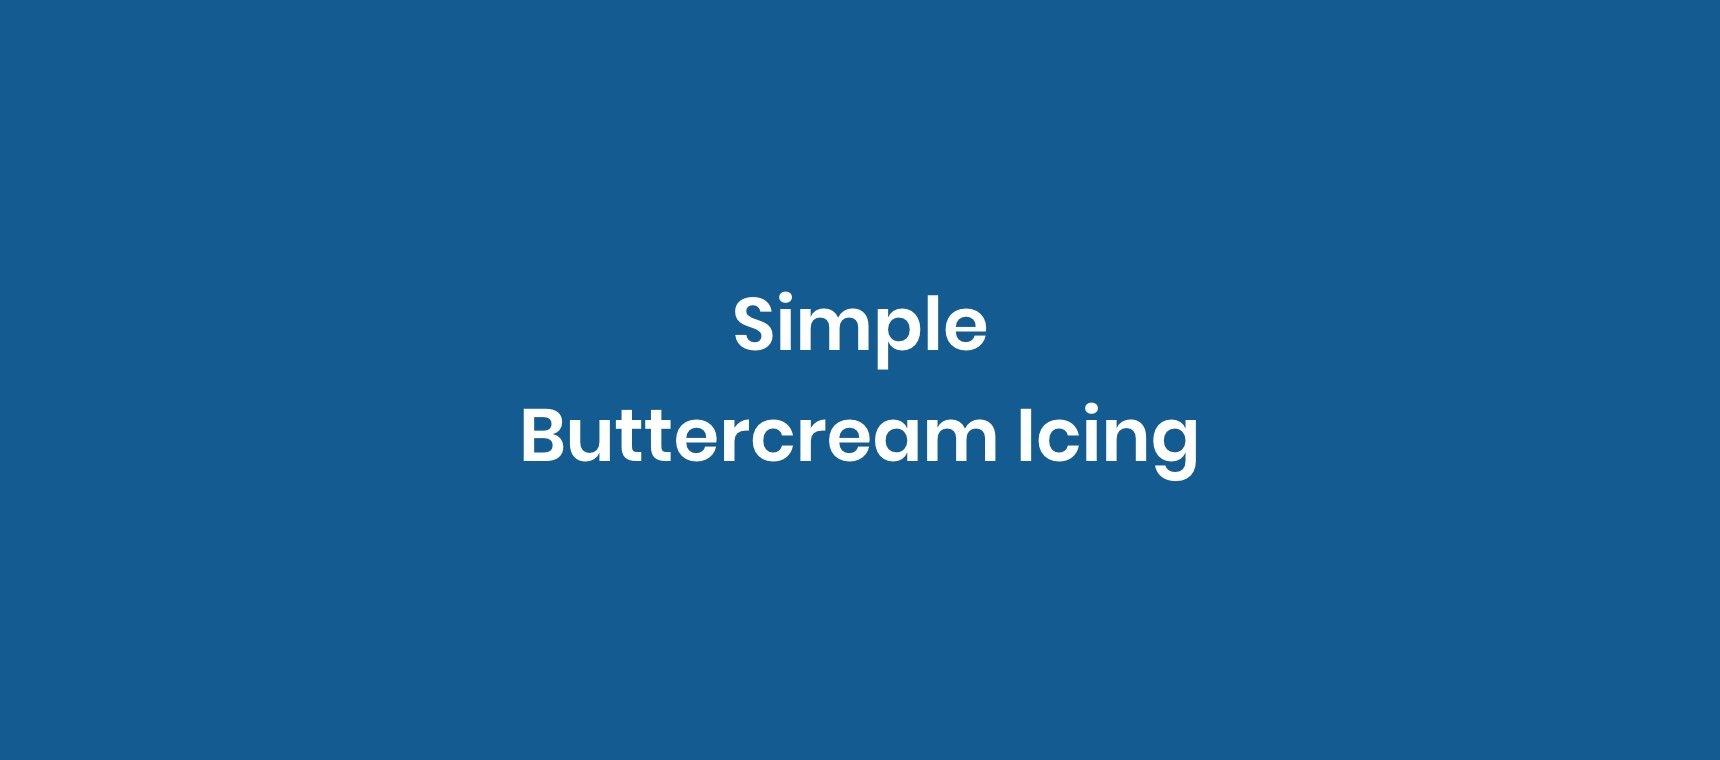 Simple Buttercream Icing